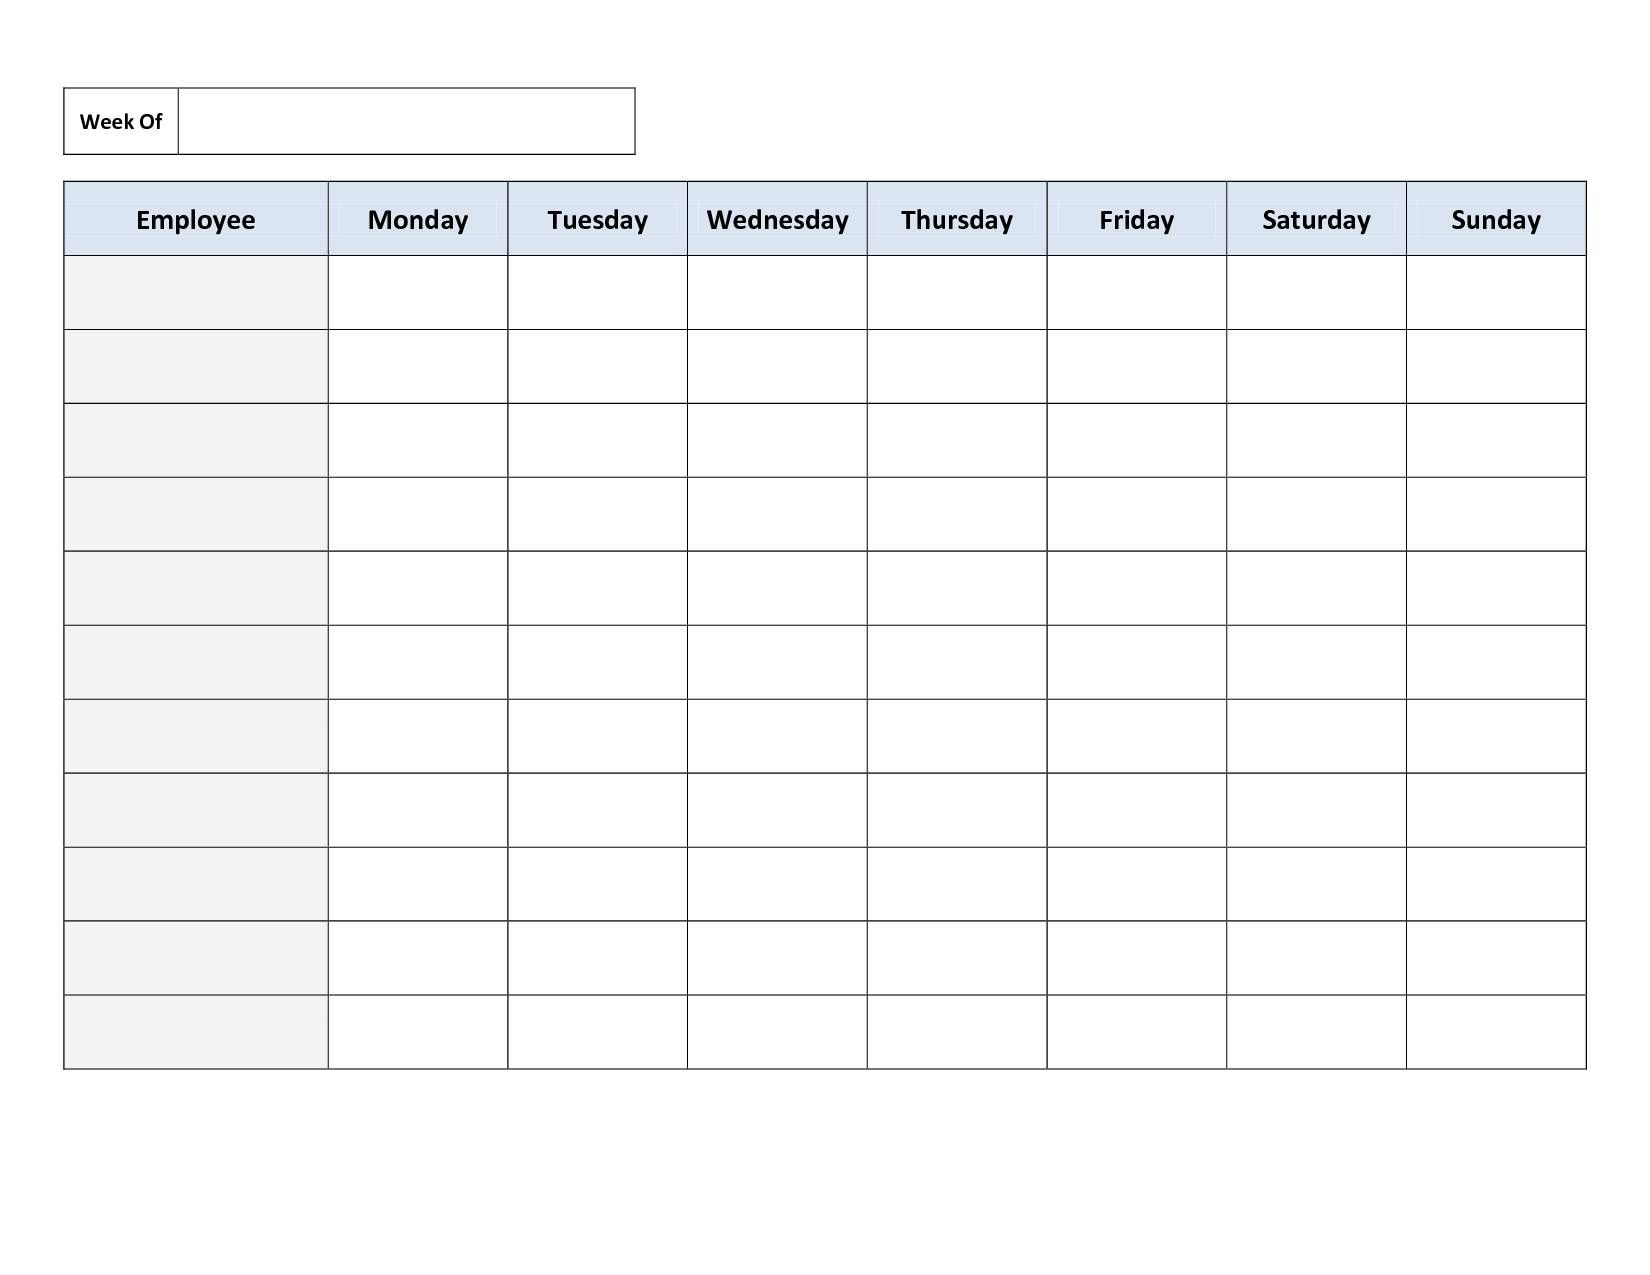 employee schedule template - Bing Images | Paulie and Her CAREGIVERS ...